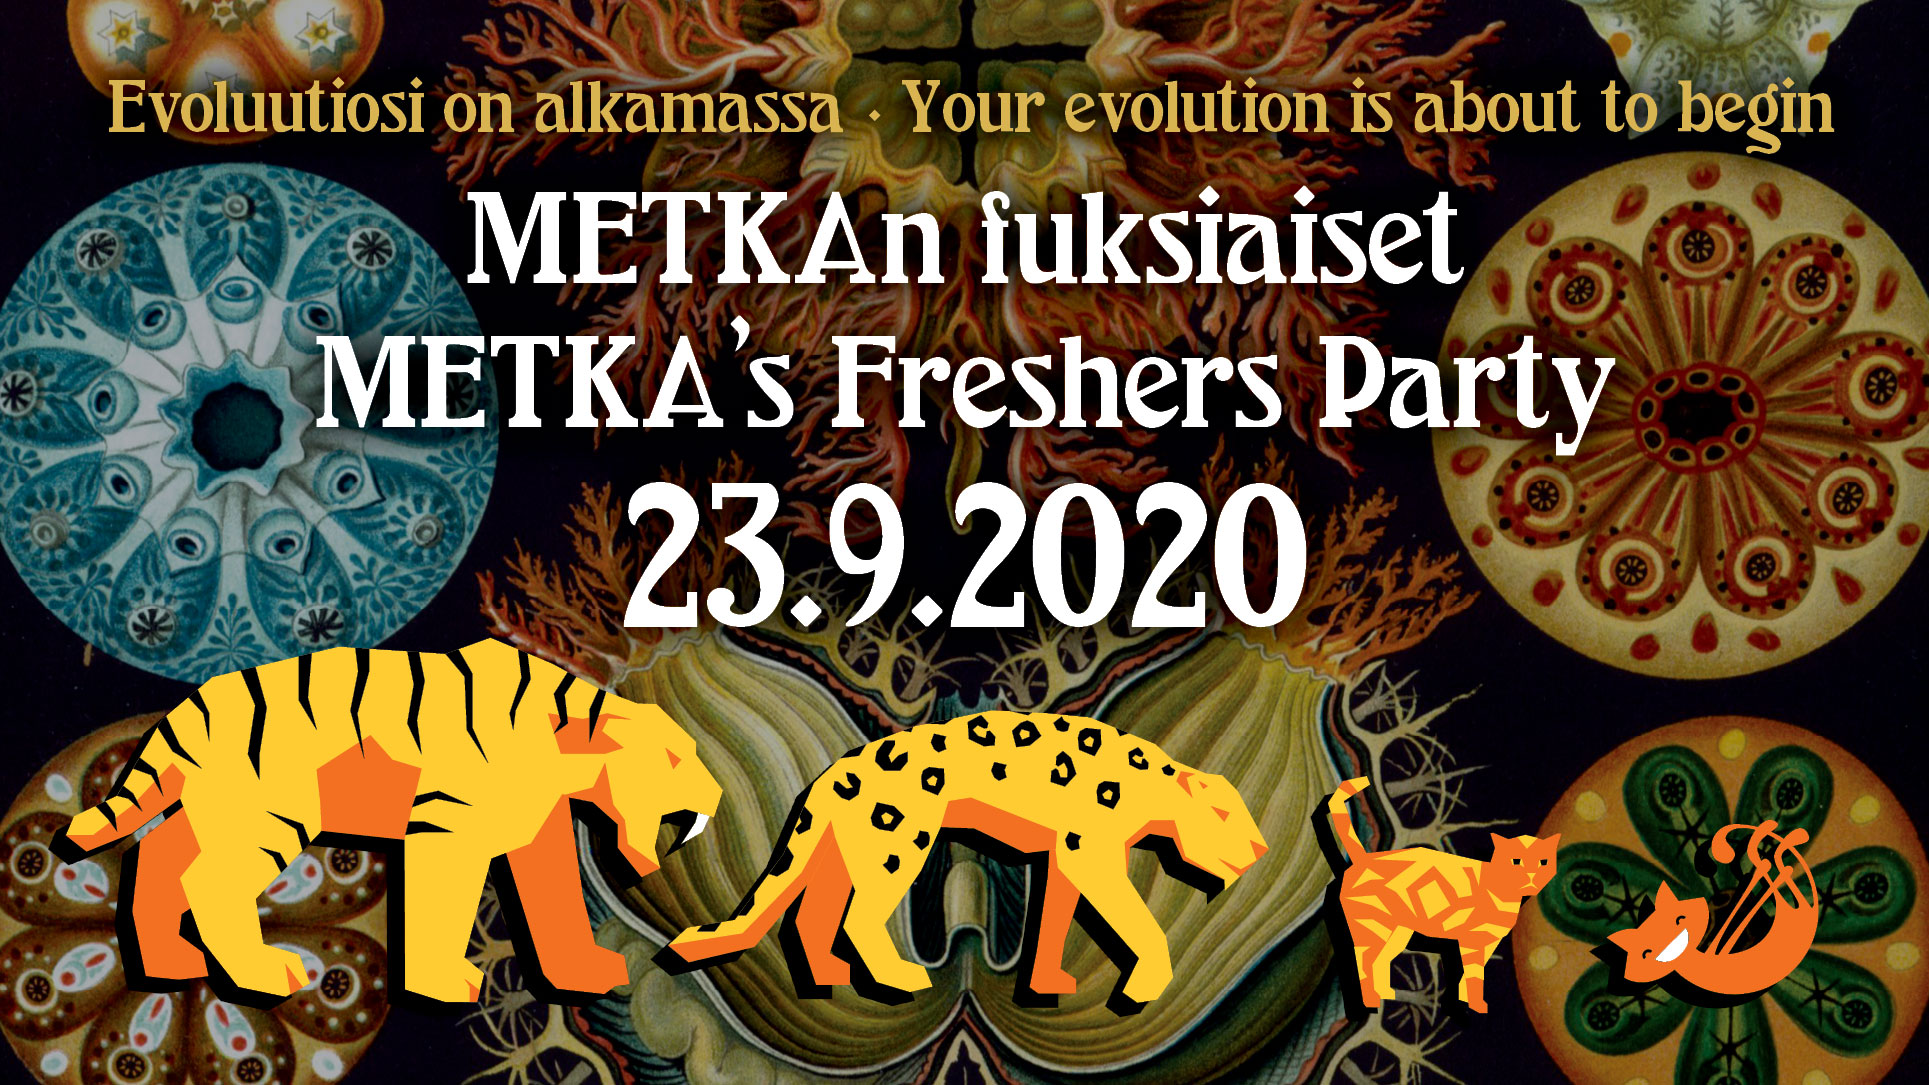 METKA's Freshers Party 2020